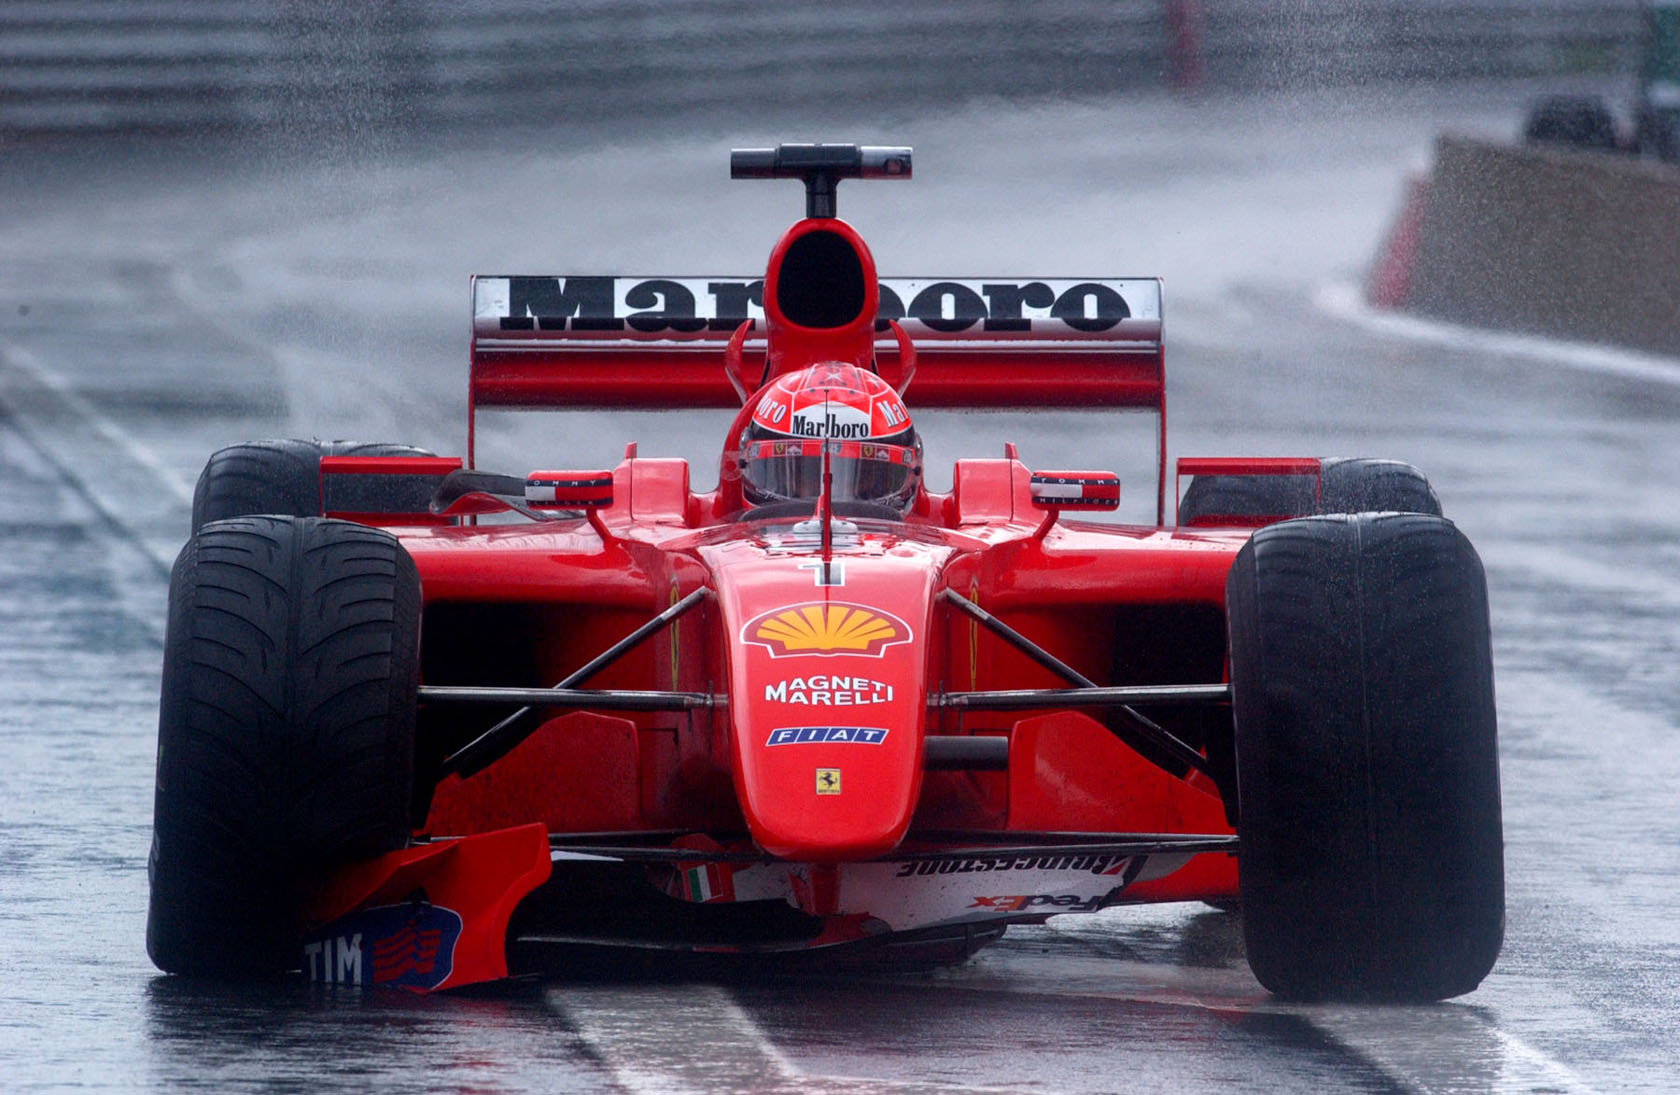 ferrari f2001 michael schumacher - photo #18